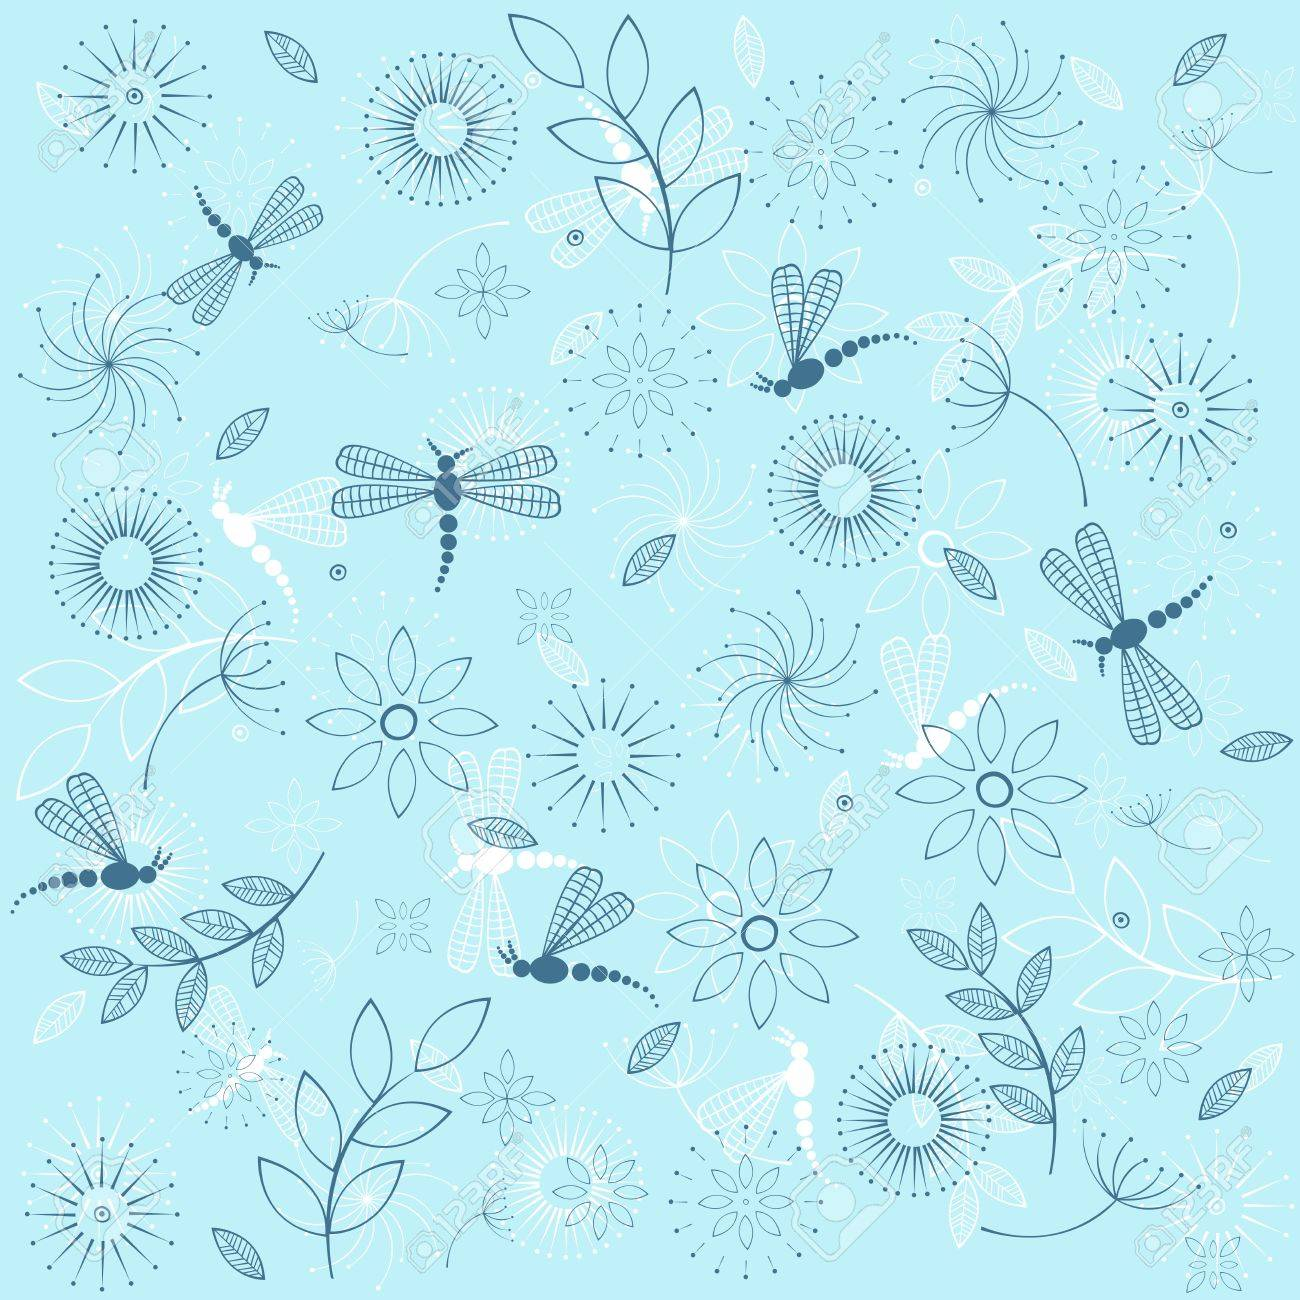 Background with blue dragonflies Stock Vector - 11590459